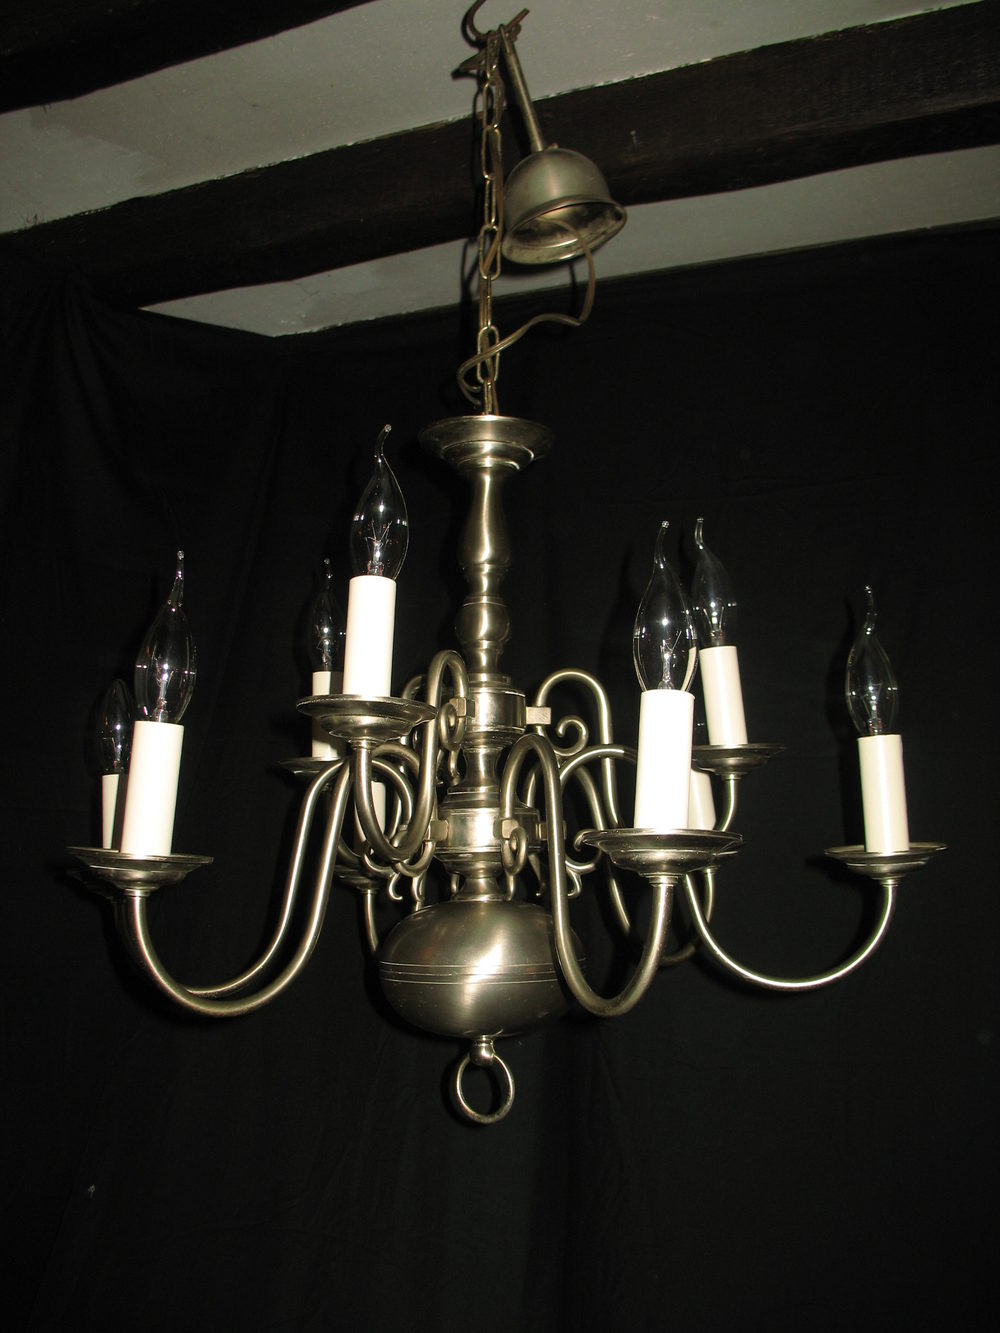 Two tier chandeliers flemish chandeliers a pleasing smaller size two tier 9 light nickle plated silver flemish chandelier this fitting will be rewired with new fittings and will be pat arubaitofo Gallery